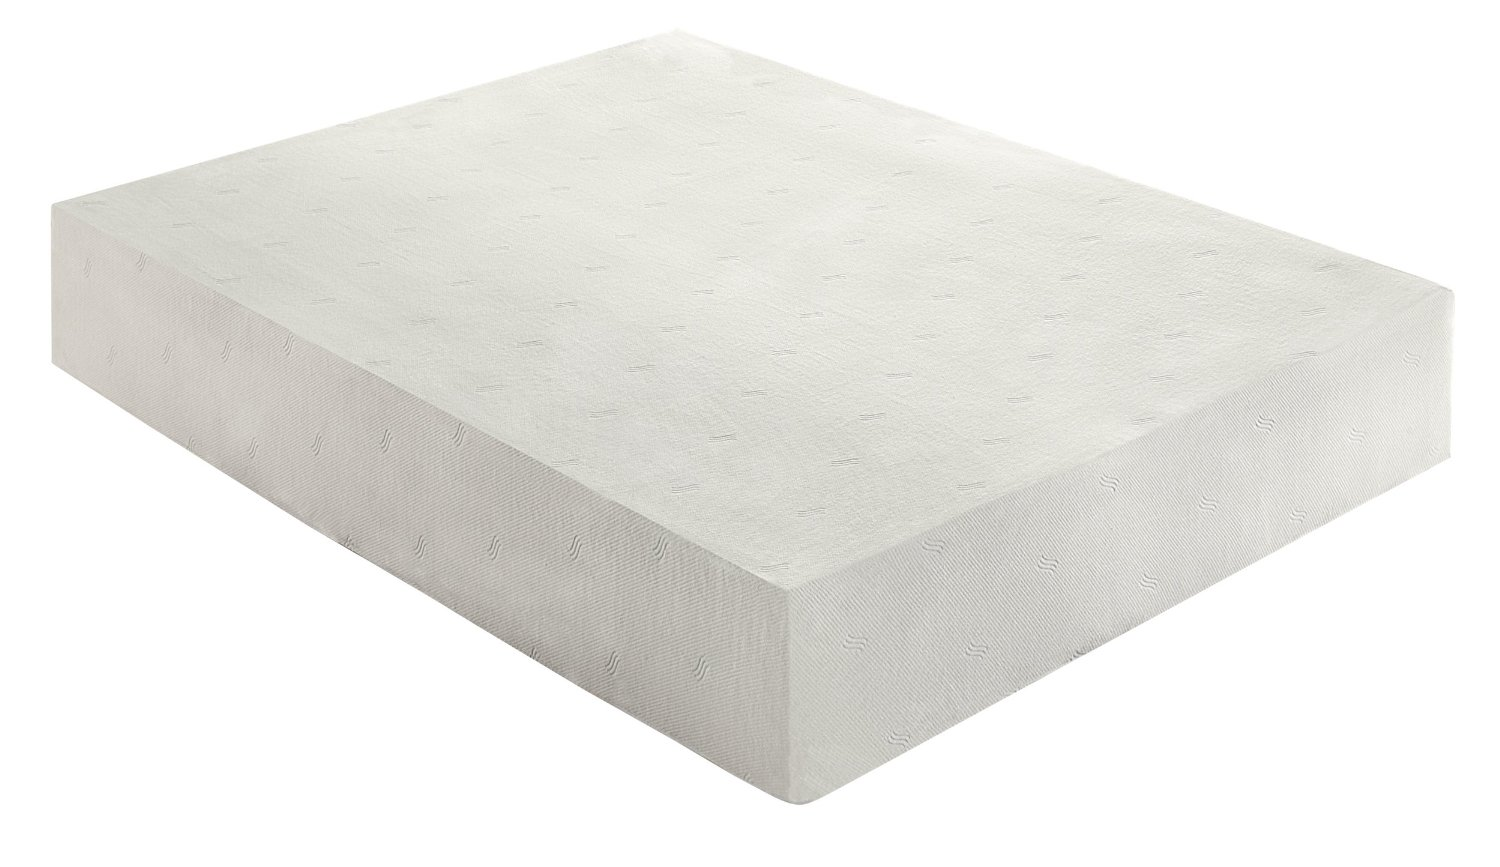 Sleep Innovations 12 Inch Suretemp Memory Foam Mattress Queen Ebay